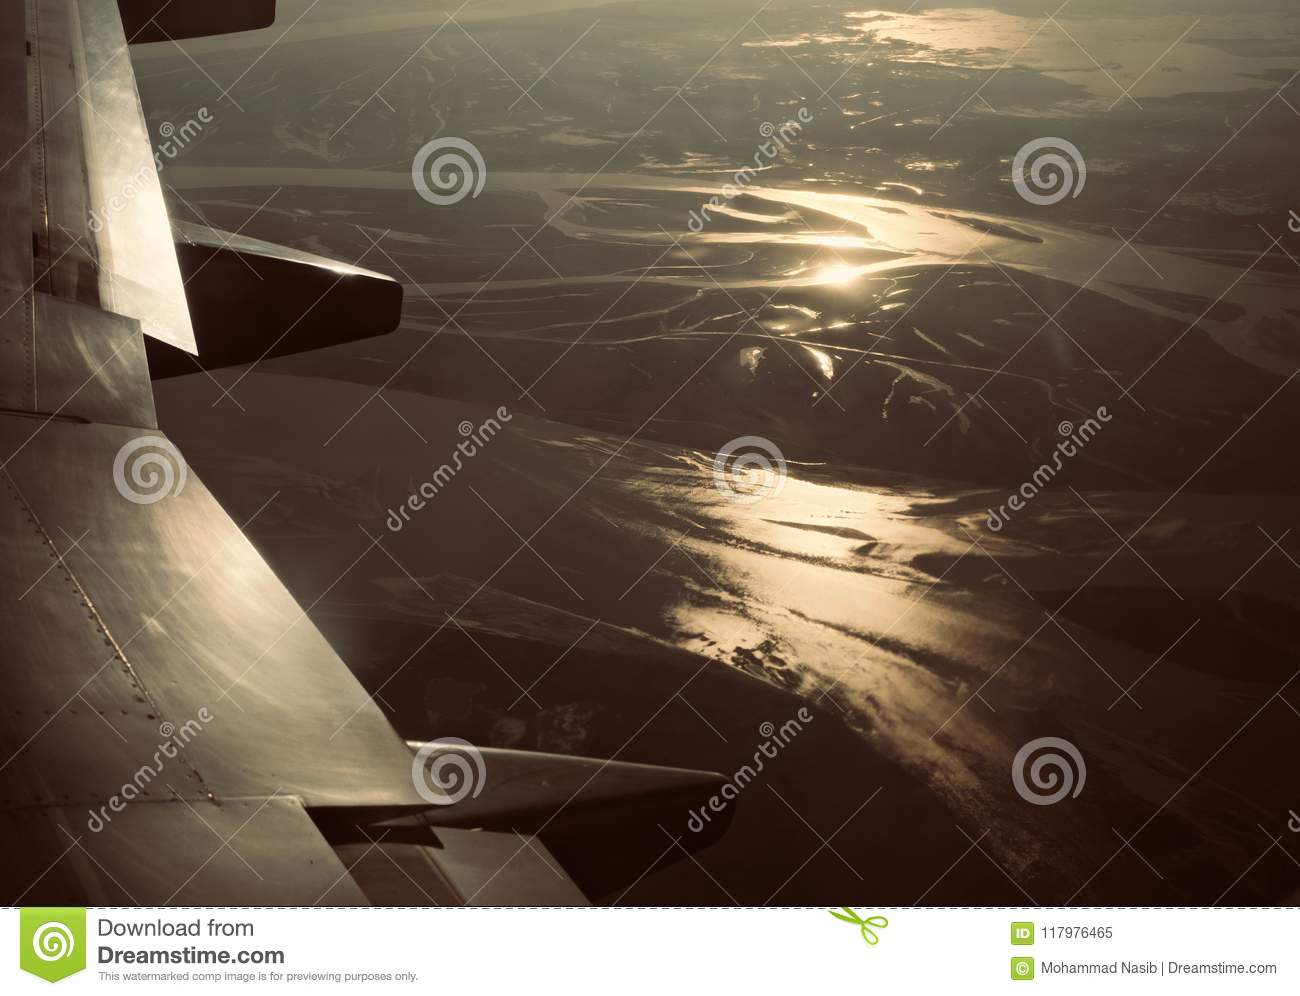 Download Right Wings Of An Airplane With Sky Background Photo Stock Image - Image of part, beautiful: 117976465